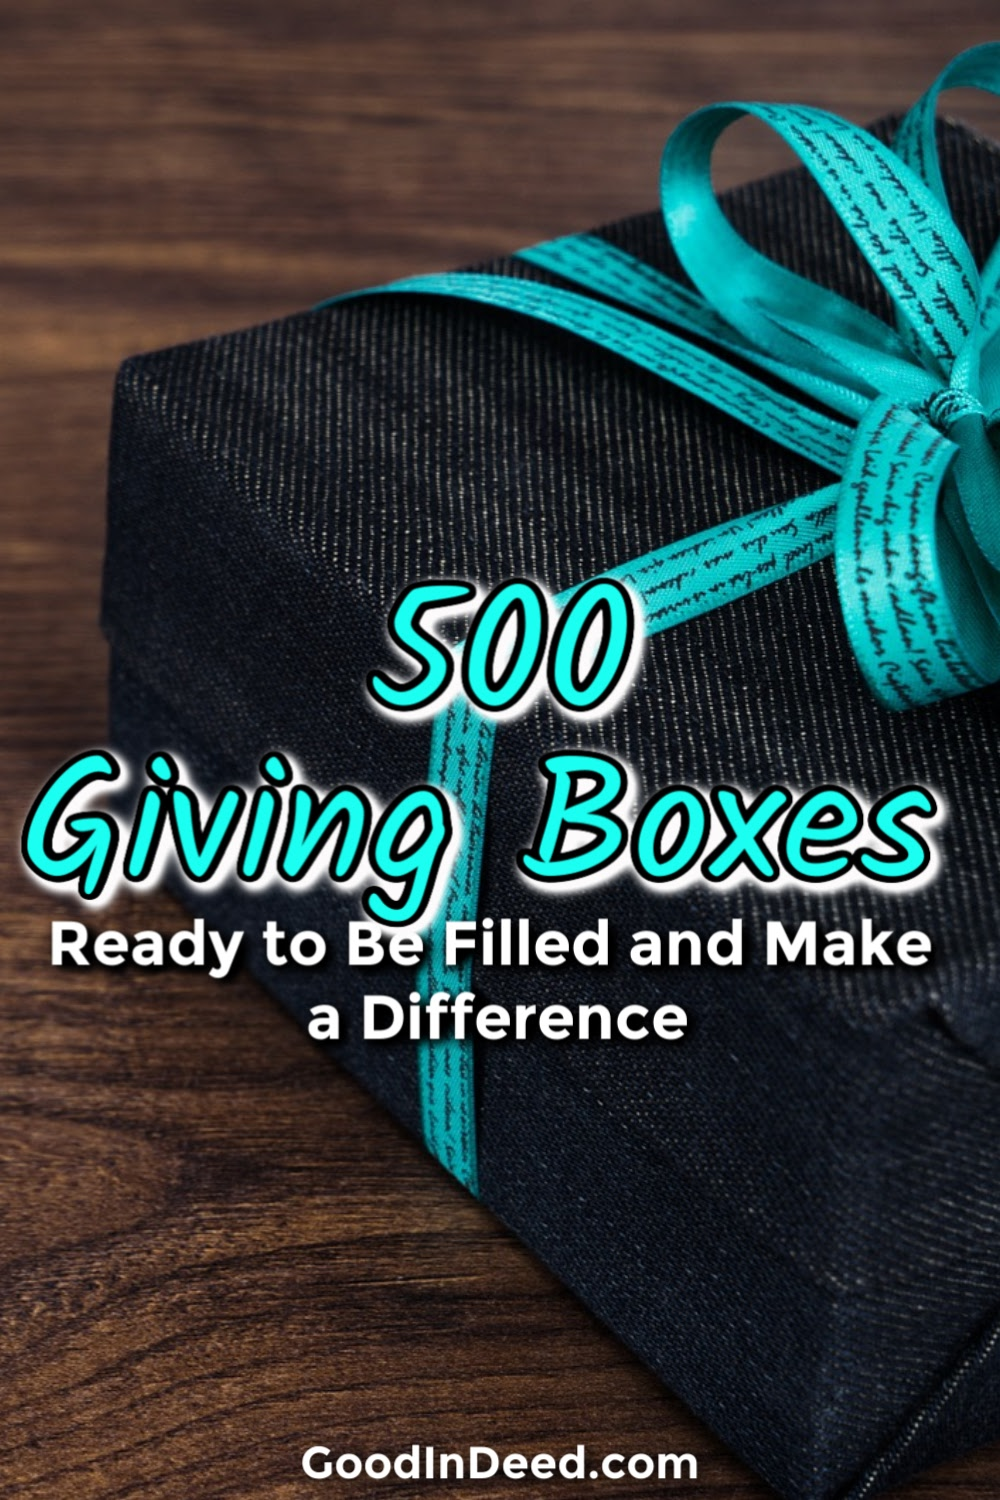 You can easily get some Giving Boxes ready to be filled and then send them off to those who need a little help right now.